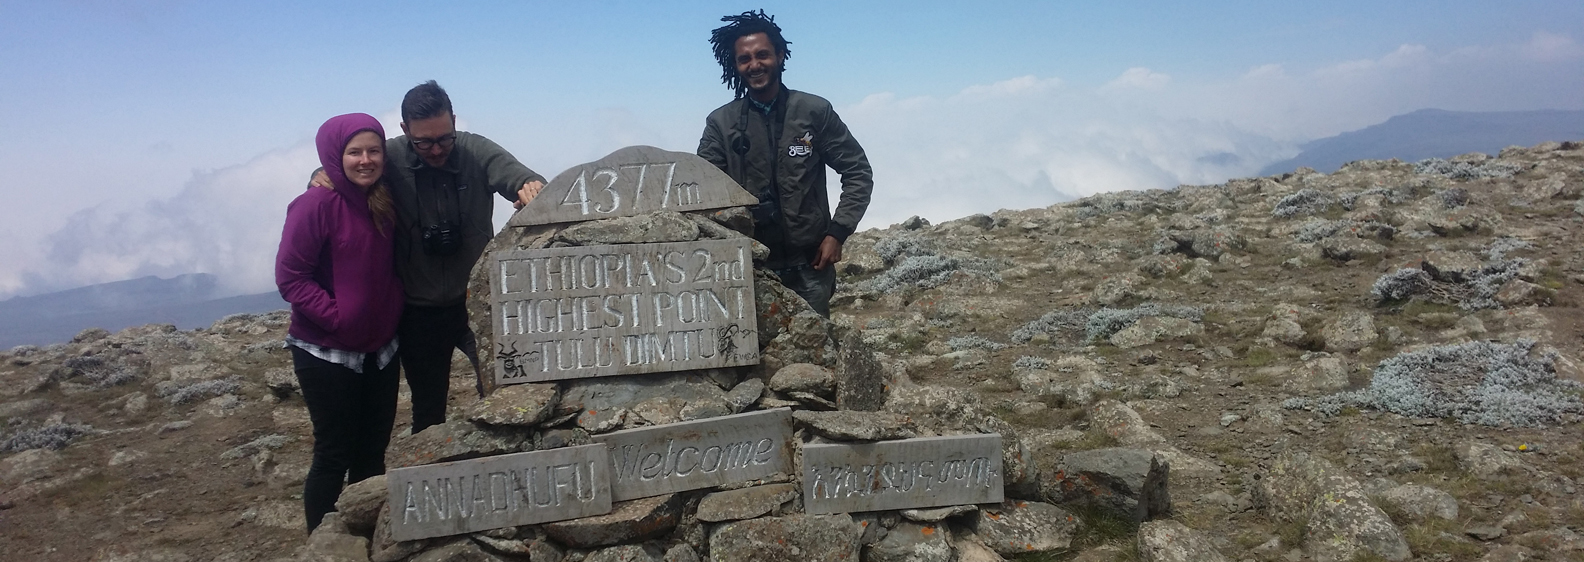 On the second_highest_point -of _Ethiopia